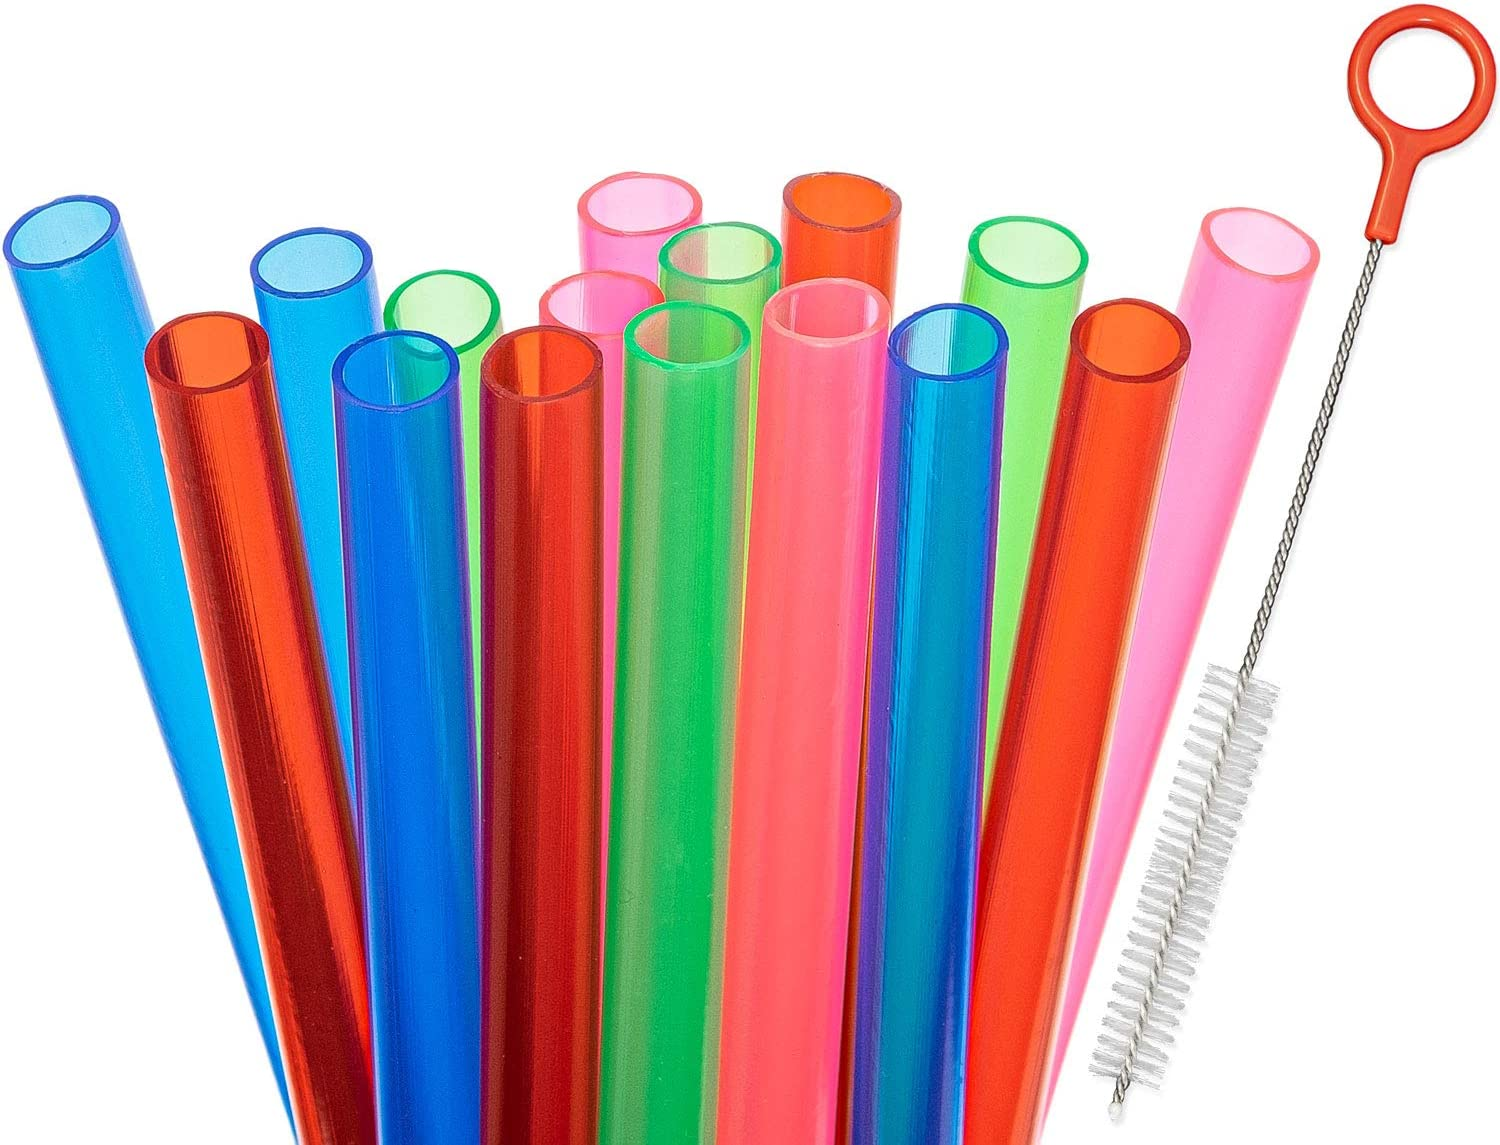 Fiesta First 15 Extra Wide Long Reusable Plastic Straws + Sturdy Cleaning Brush - for Boba/Bubble Tea/Thickest Smoothies - Assorted Colors Value Pack - BPA PFOA Free